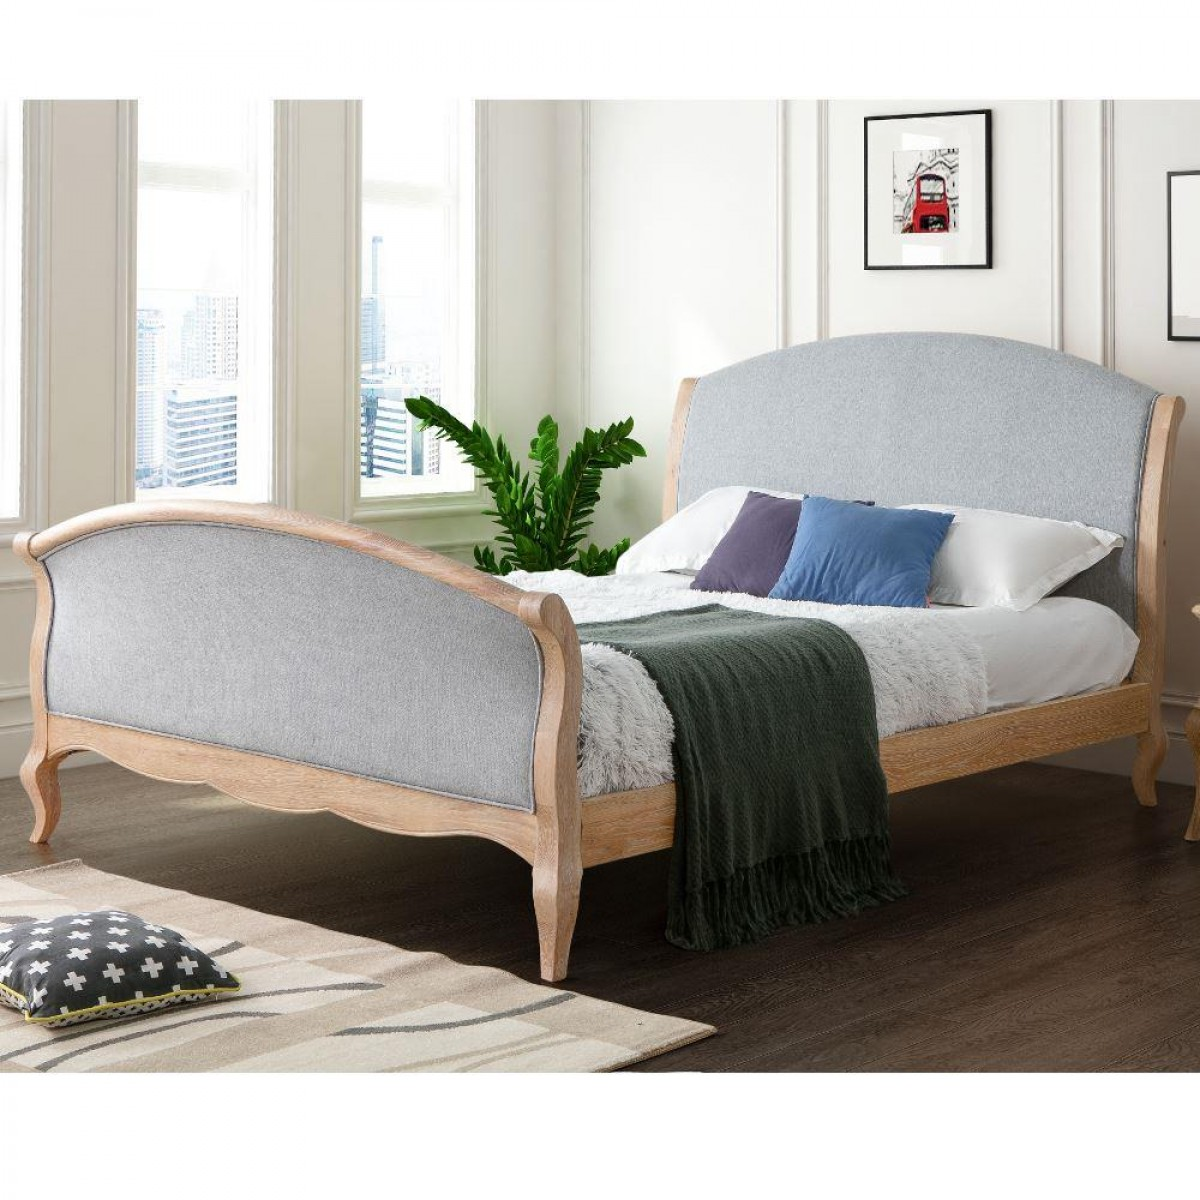 Savoy Grey Fabric and Oak Wooden Bed